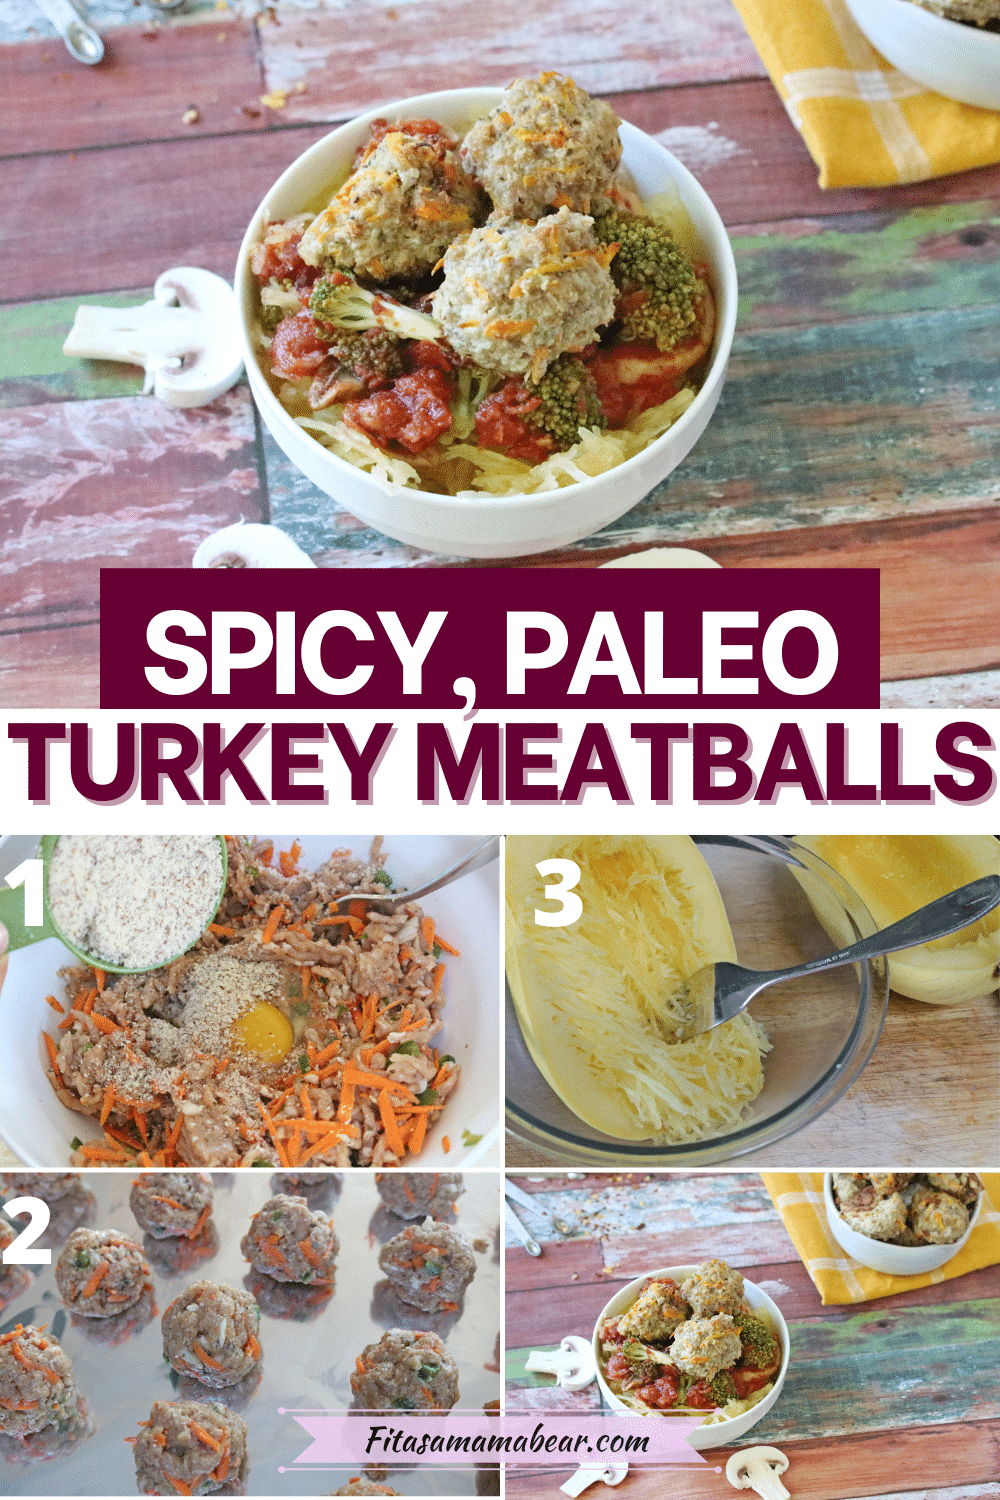 Pin image with text: top image of turkey meatballs on spaghetti squash in a white bowl the bottom images of in process shots when making the dinner recipe